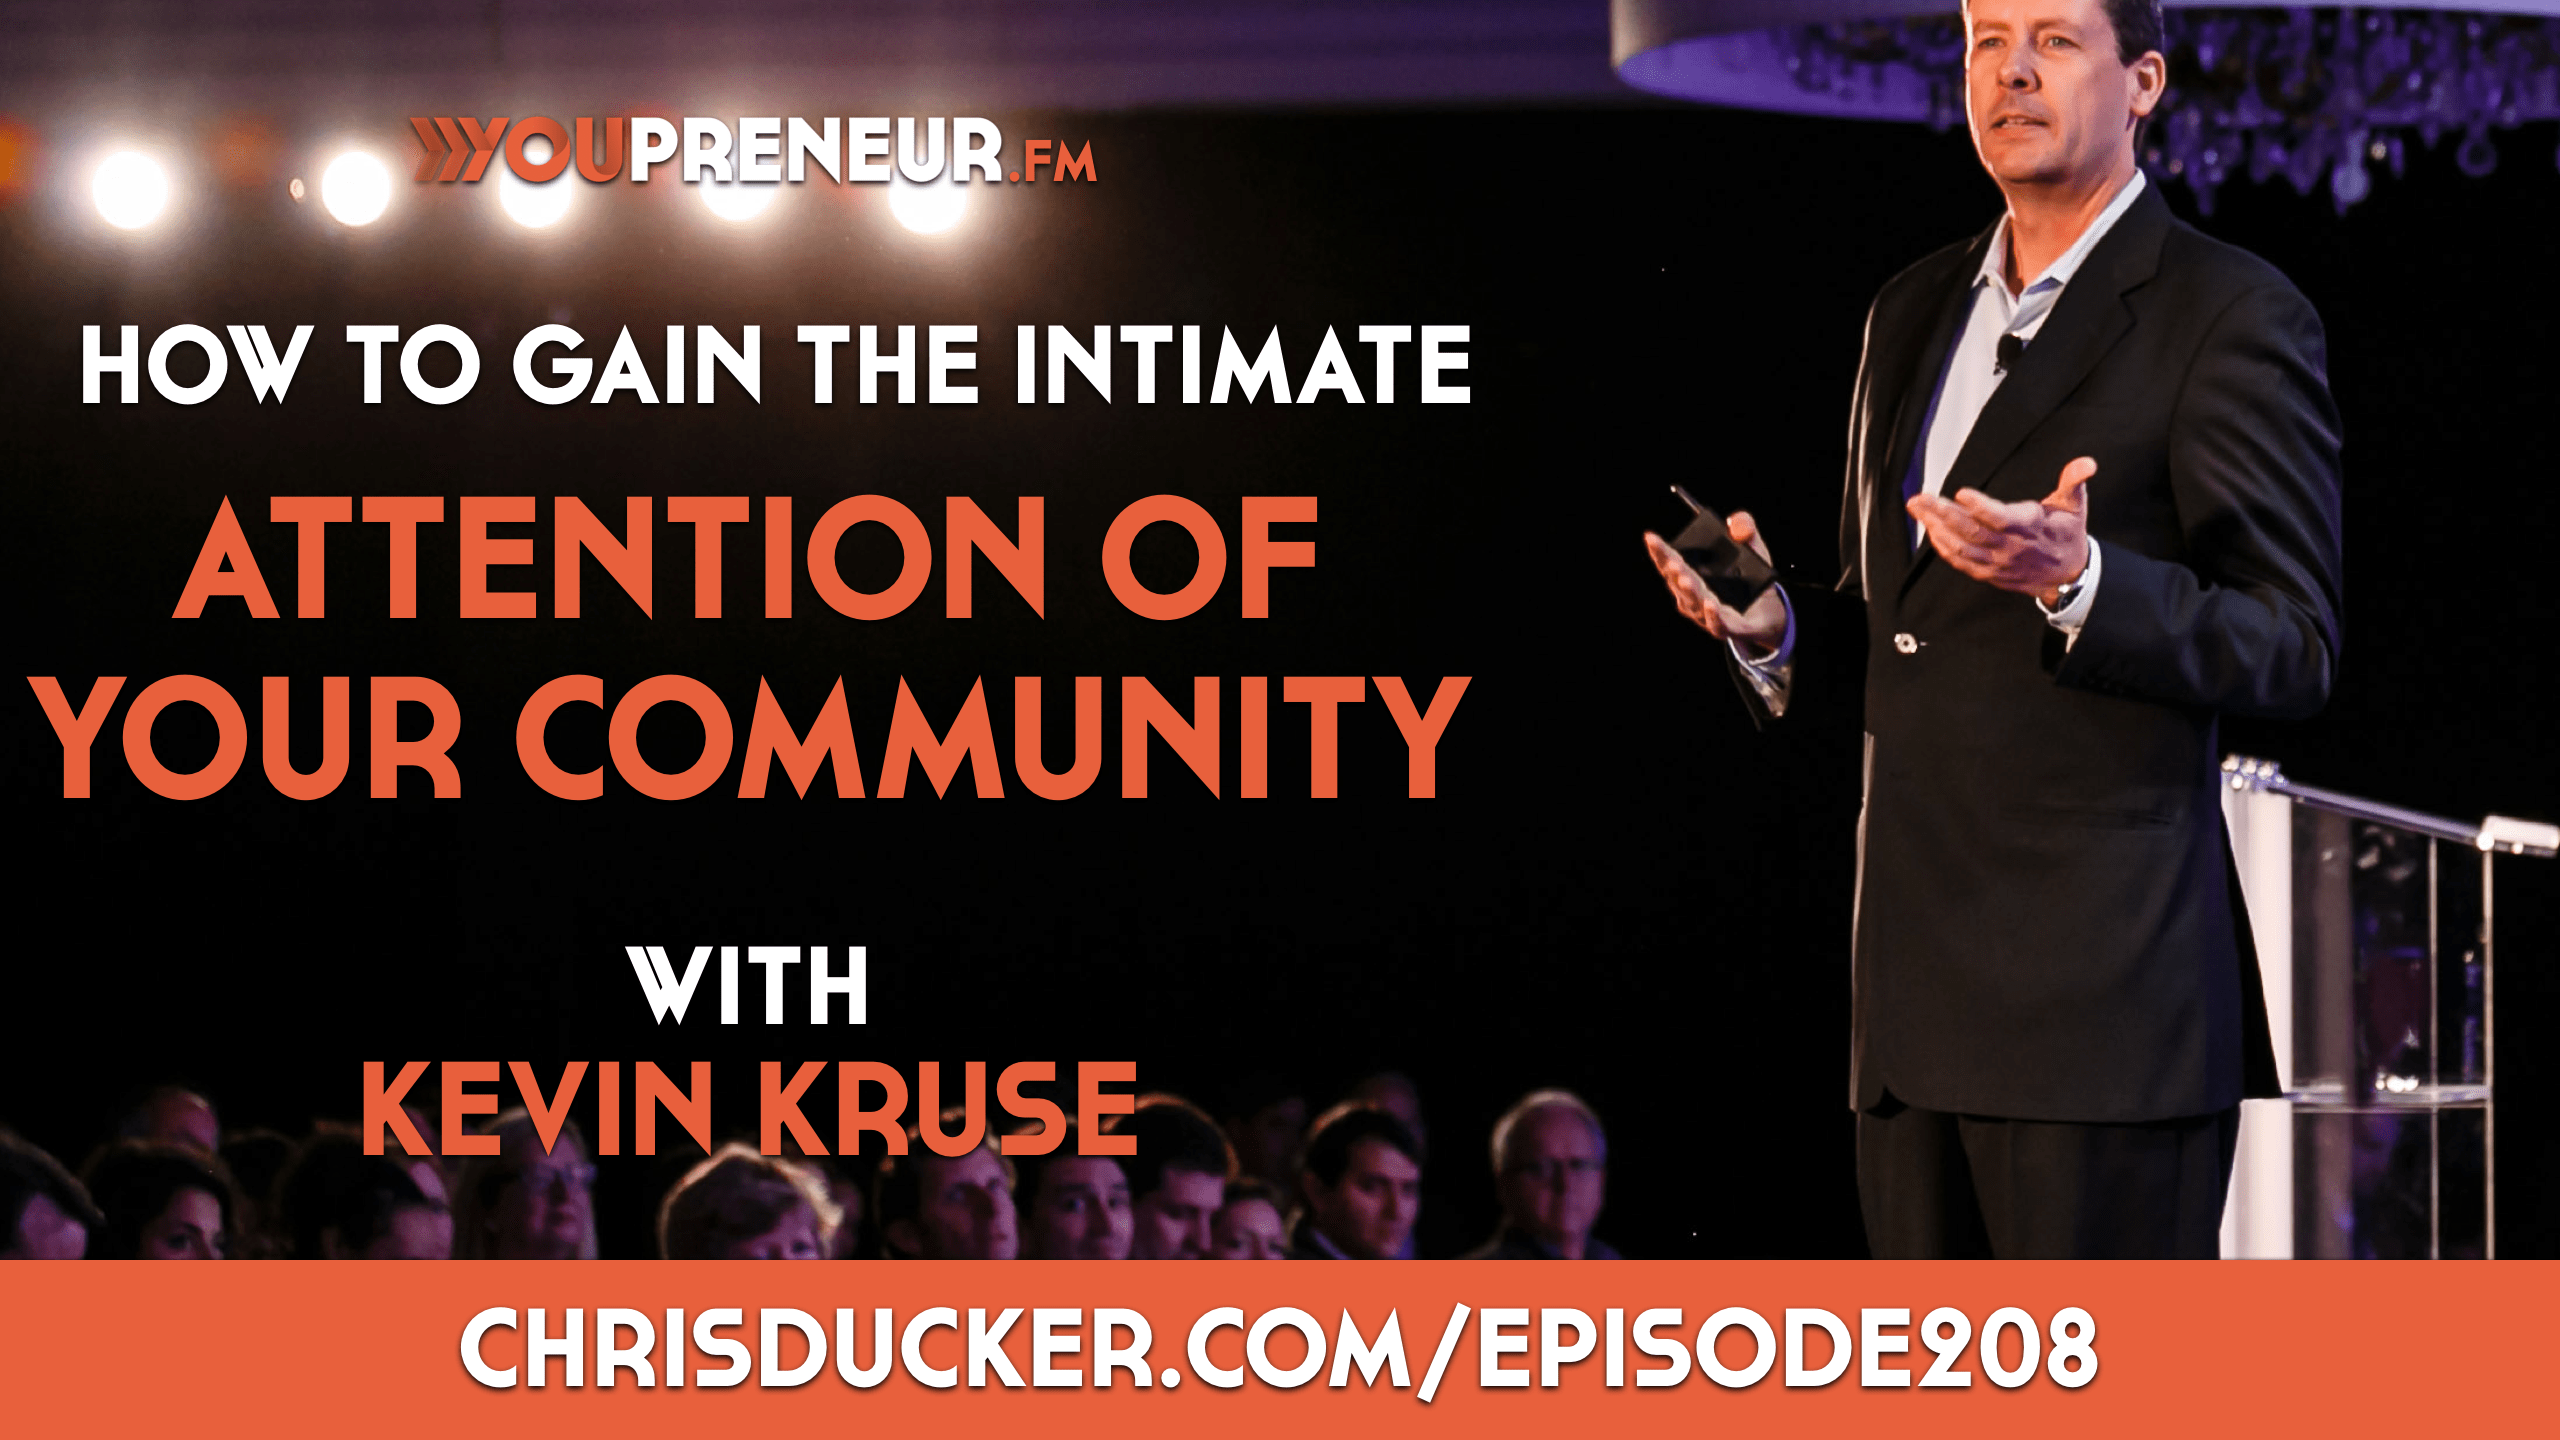 How To Gain The Intimate Attention Of Your Community With